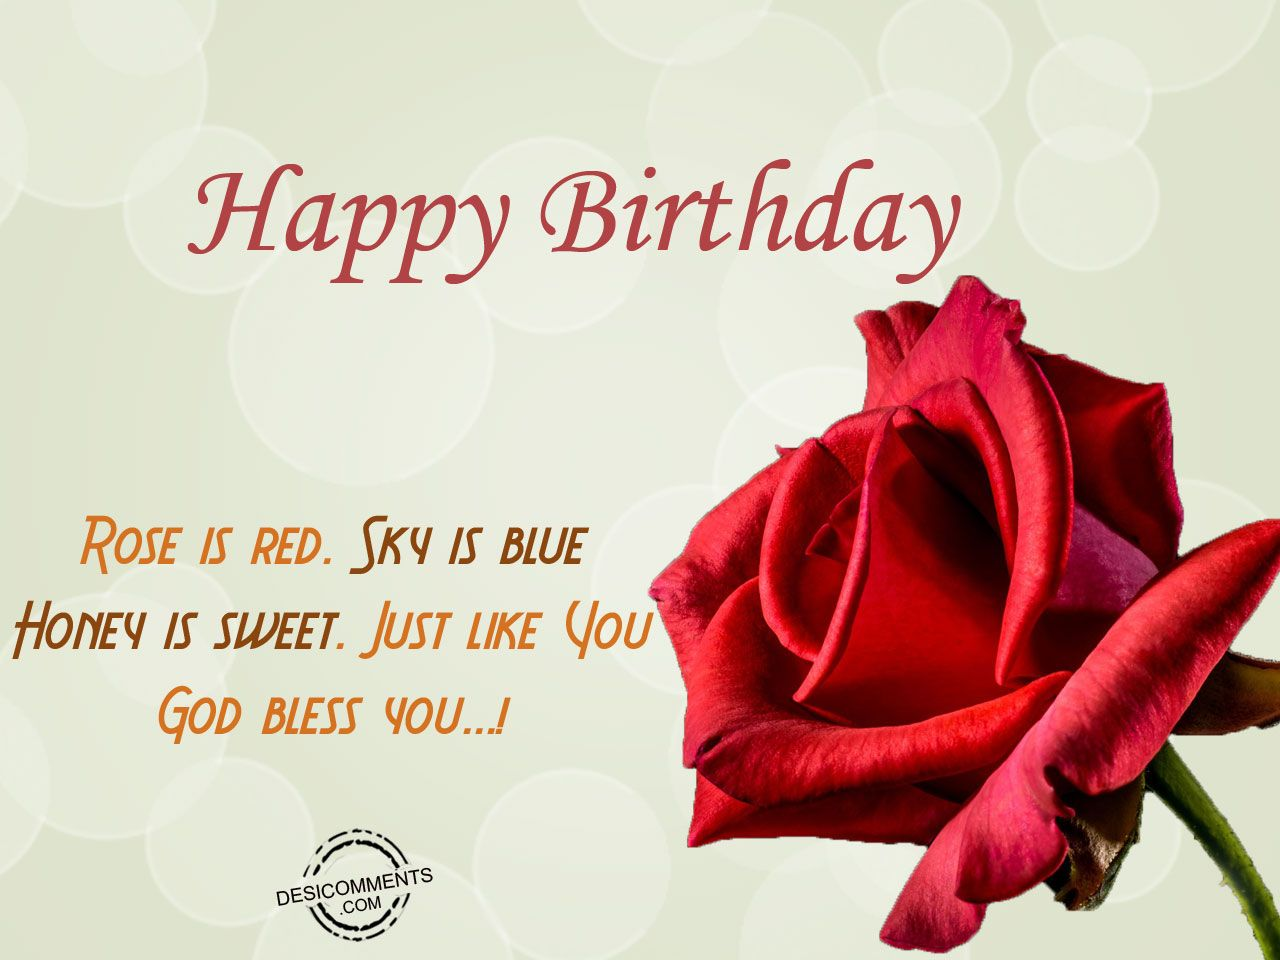 Happy Birthday Wishes For Wife ~ Rose is red sky is blue birthdays wife birthday